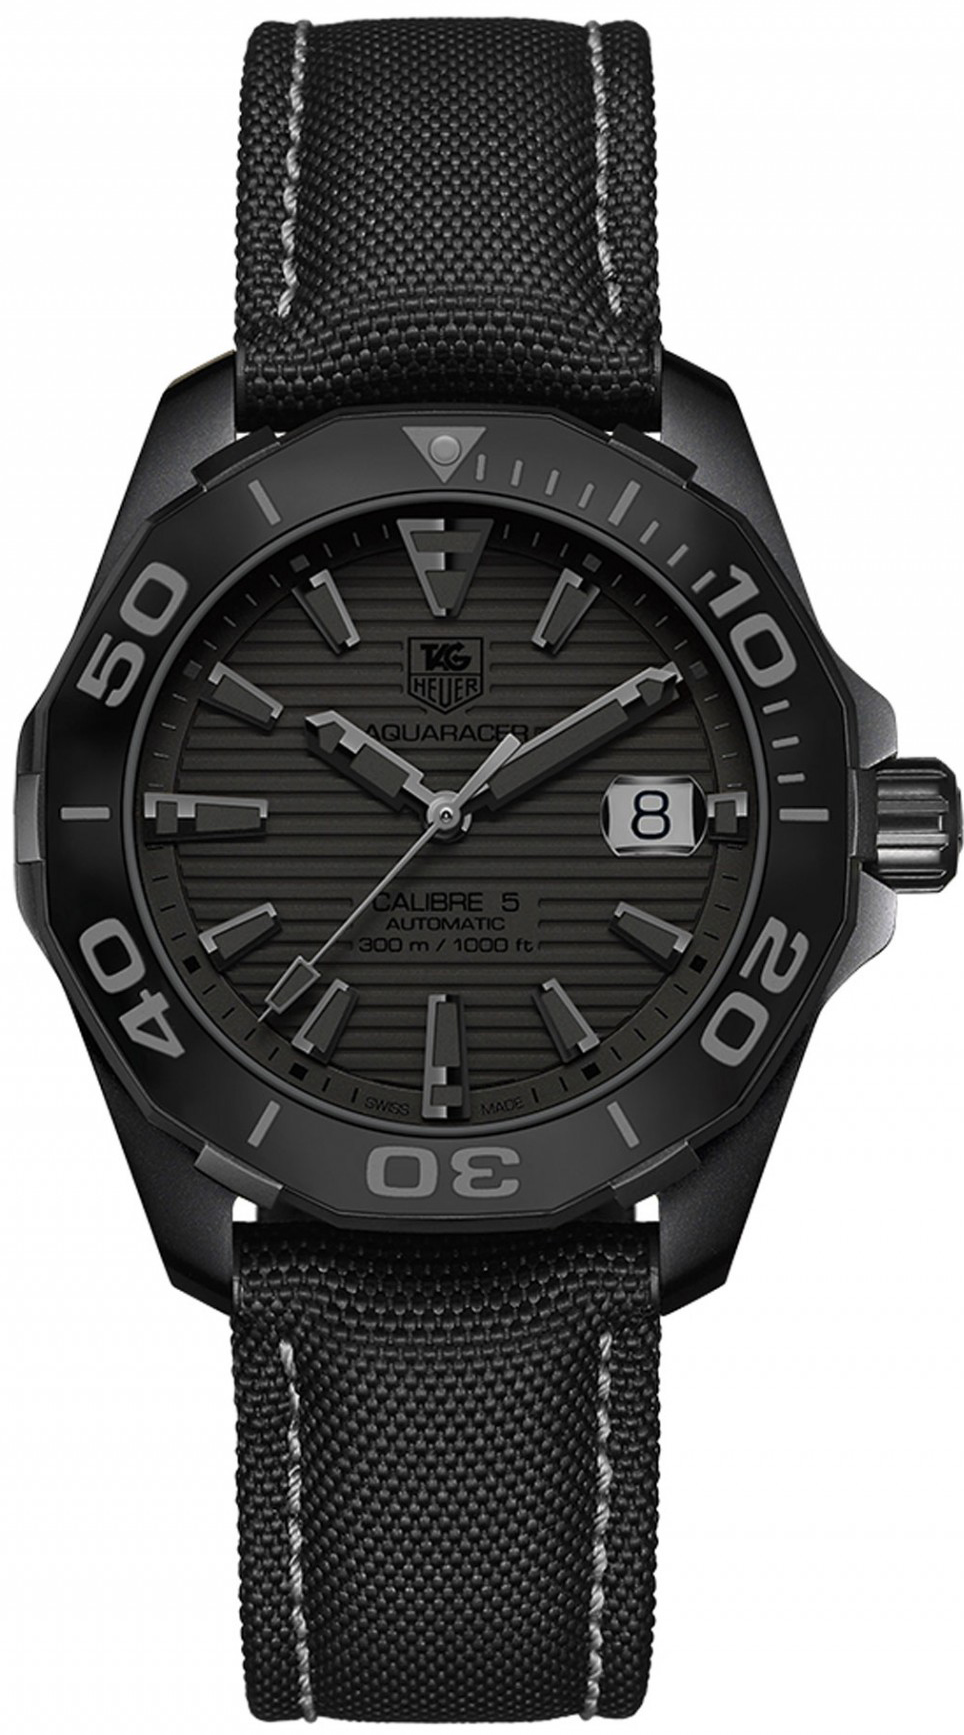 Way218b fc6364 tag heuer aquaracer 300m automatic 41mm limited edition mens water resistant for The tag heuer aquaracer